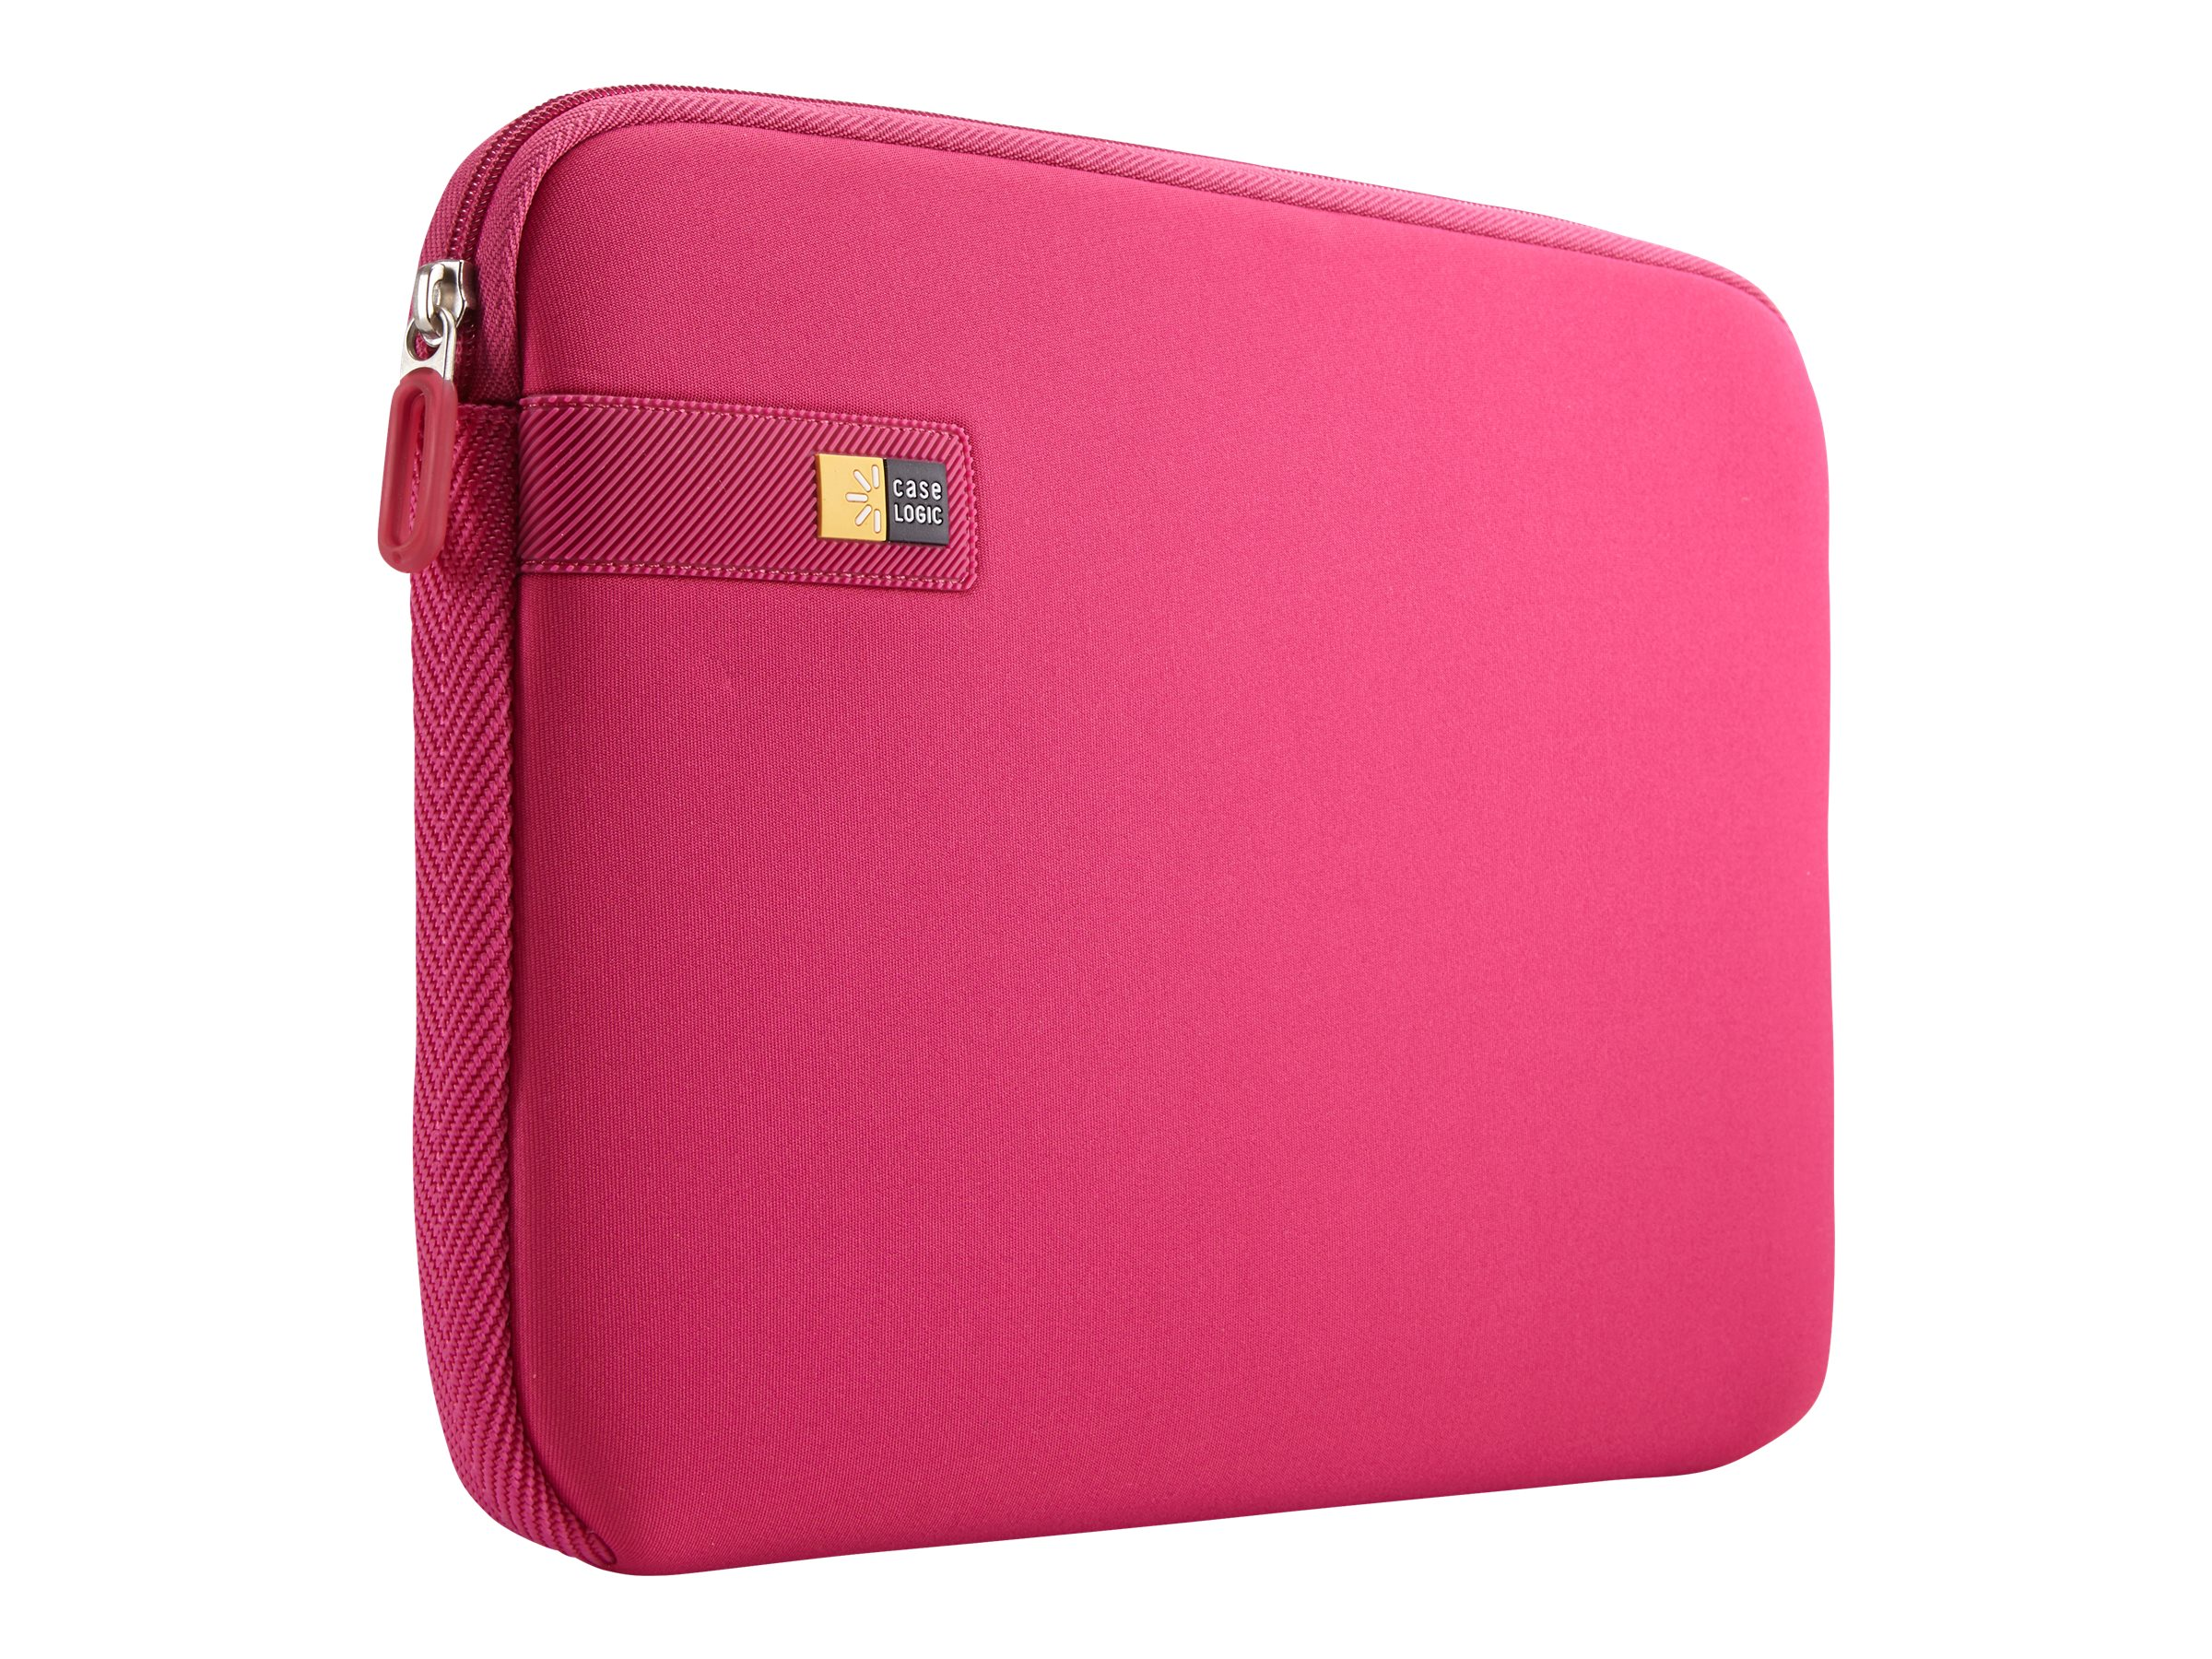 Case Logic Chromebooks Ultrabooks Sleeve 10-11.6, Pink, LAPS-111PINK